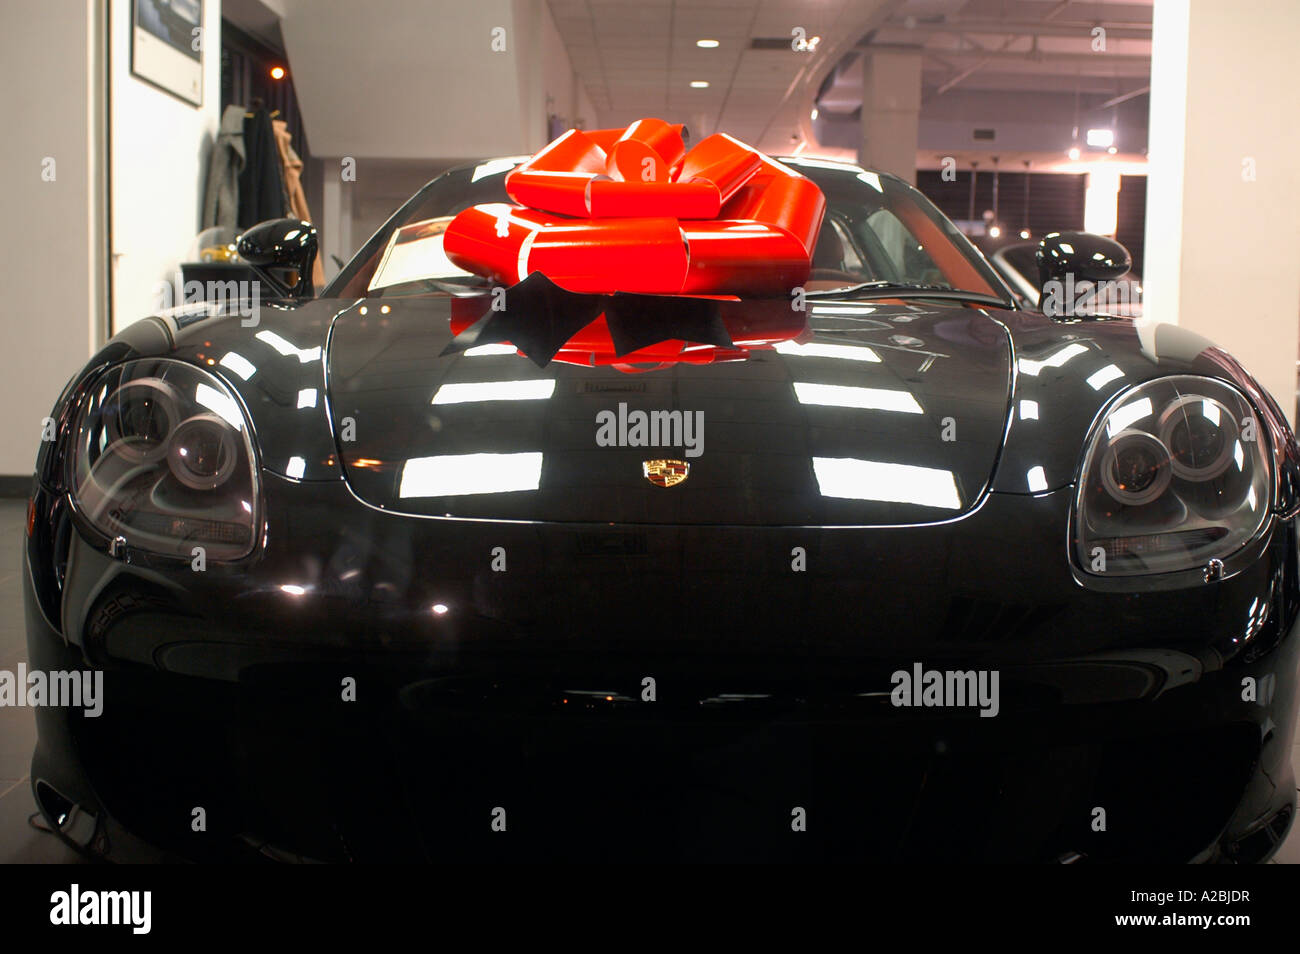 A Black Porsche All Decorated As A Christmas Gift Stock Photo Royalty Free Image 10471042 Alamy